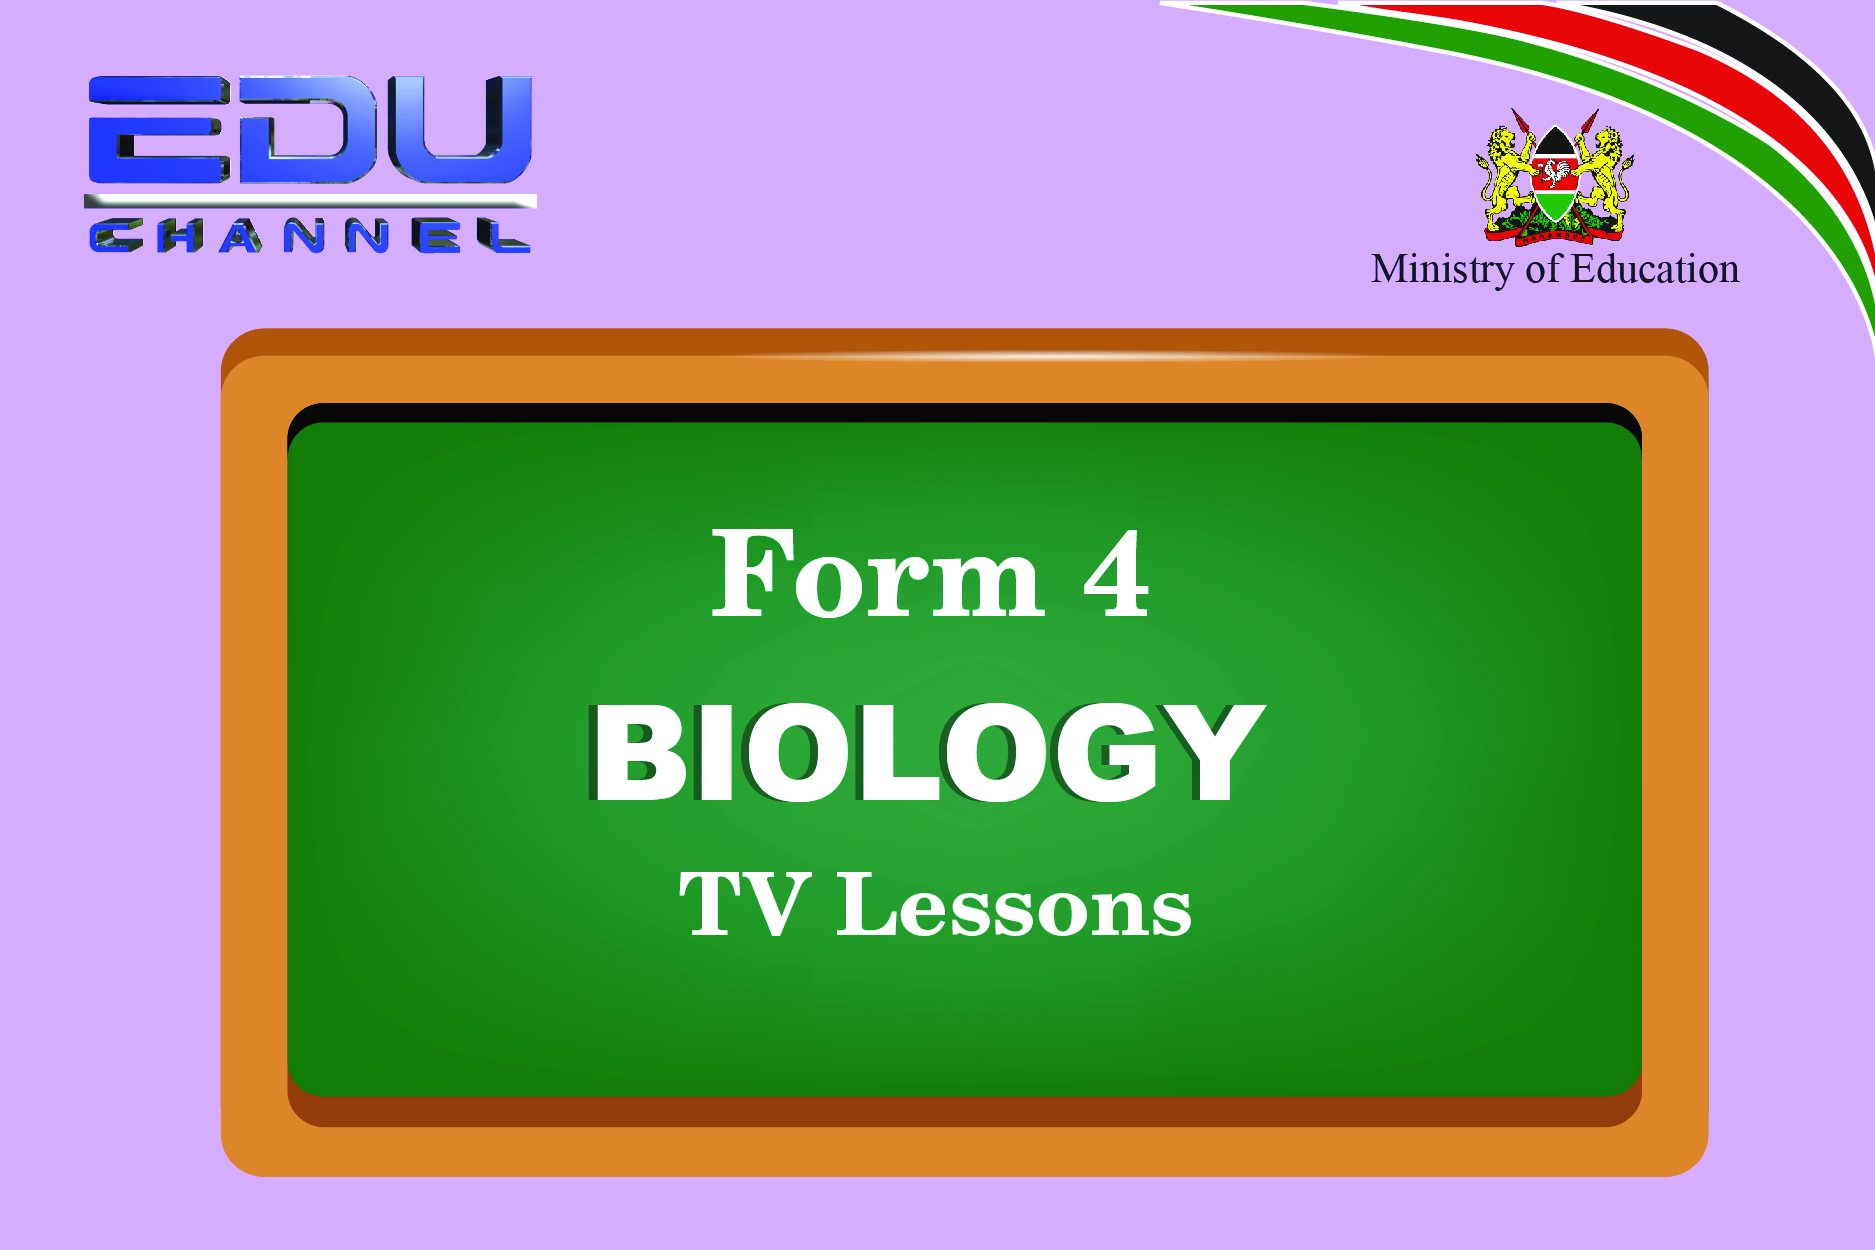 Form 4 Biology Lesson 2: Genetics Genes and DNA